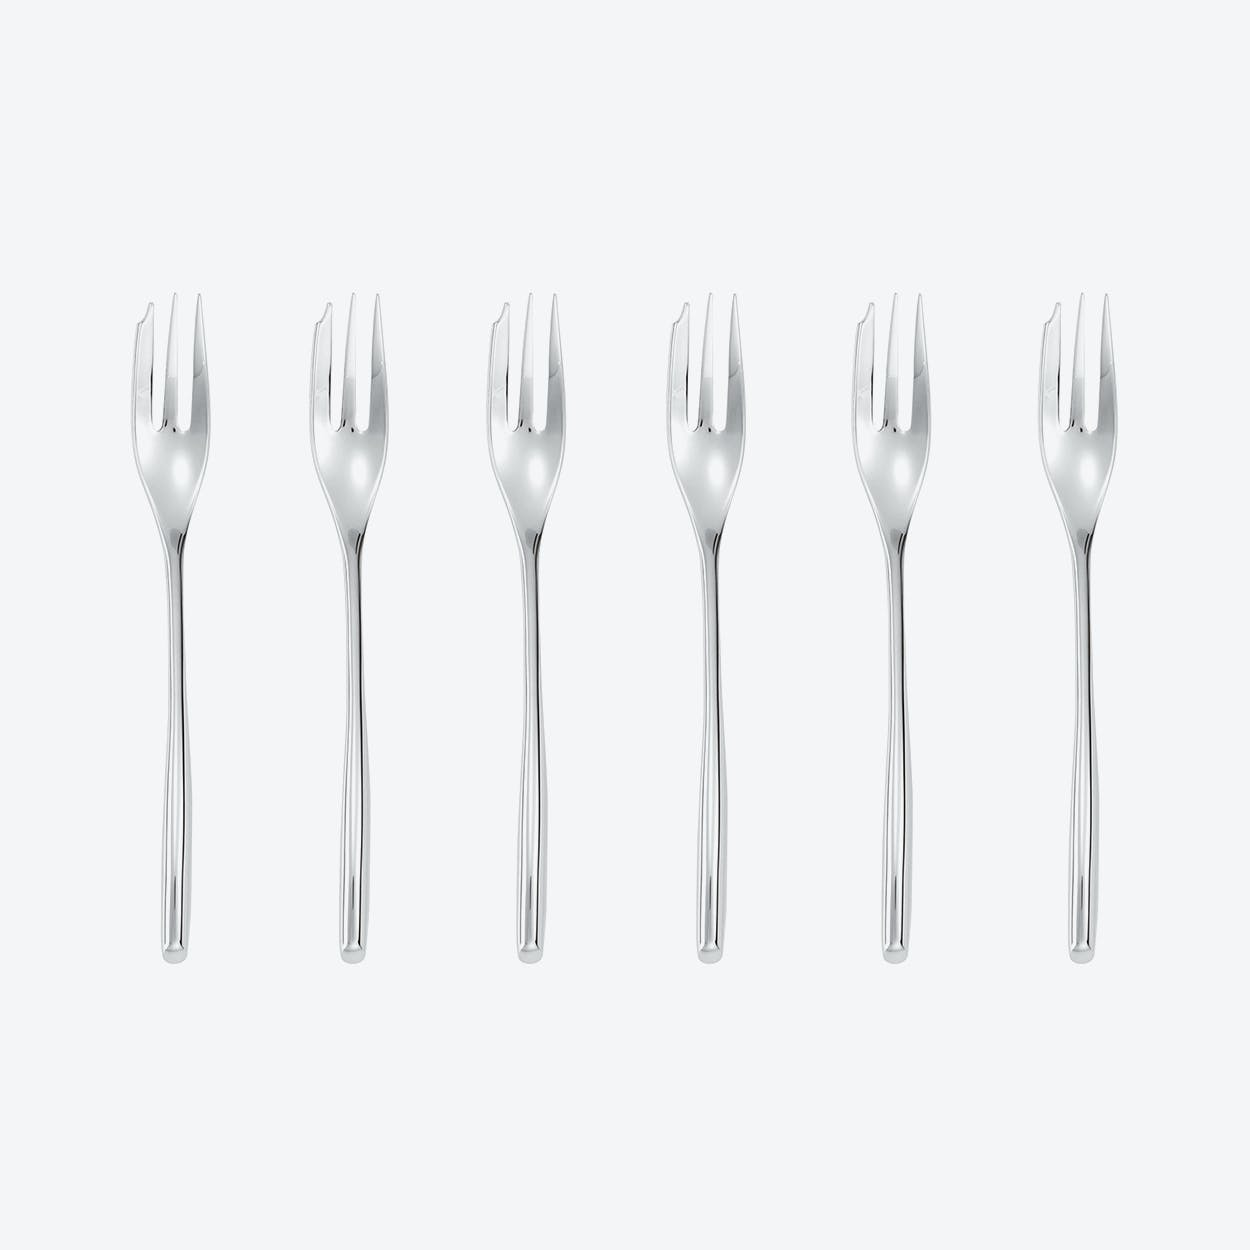 Bamboo Stainless Steel Oyster/Cake Fork Set (6 pcs)